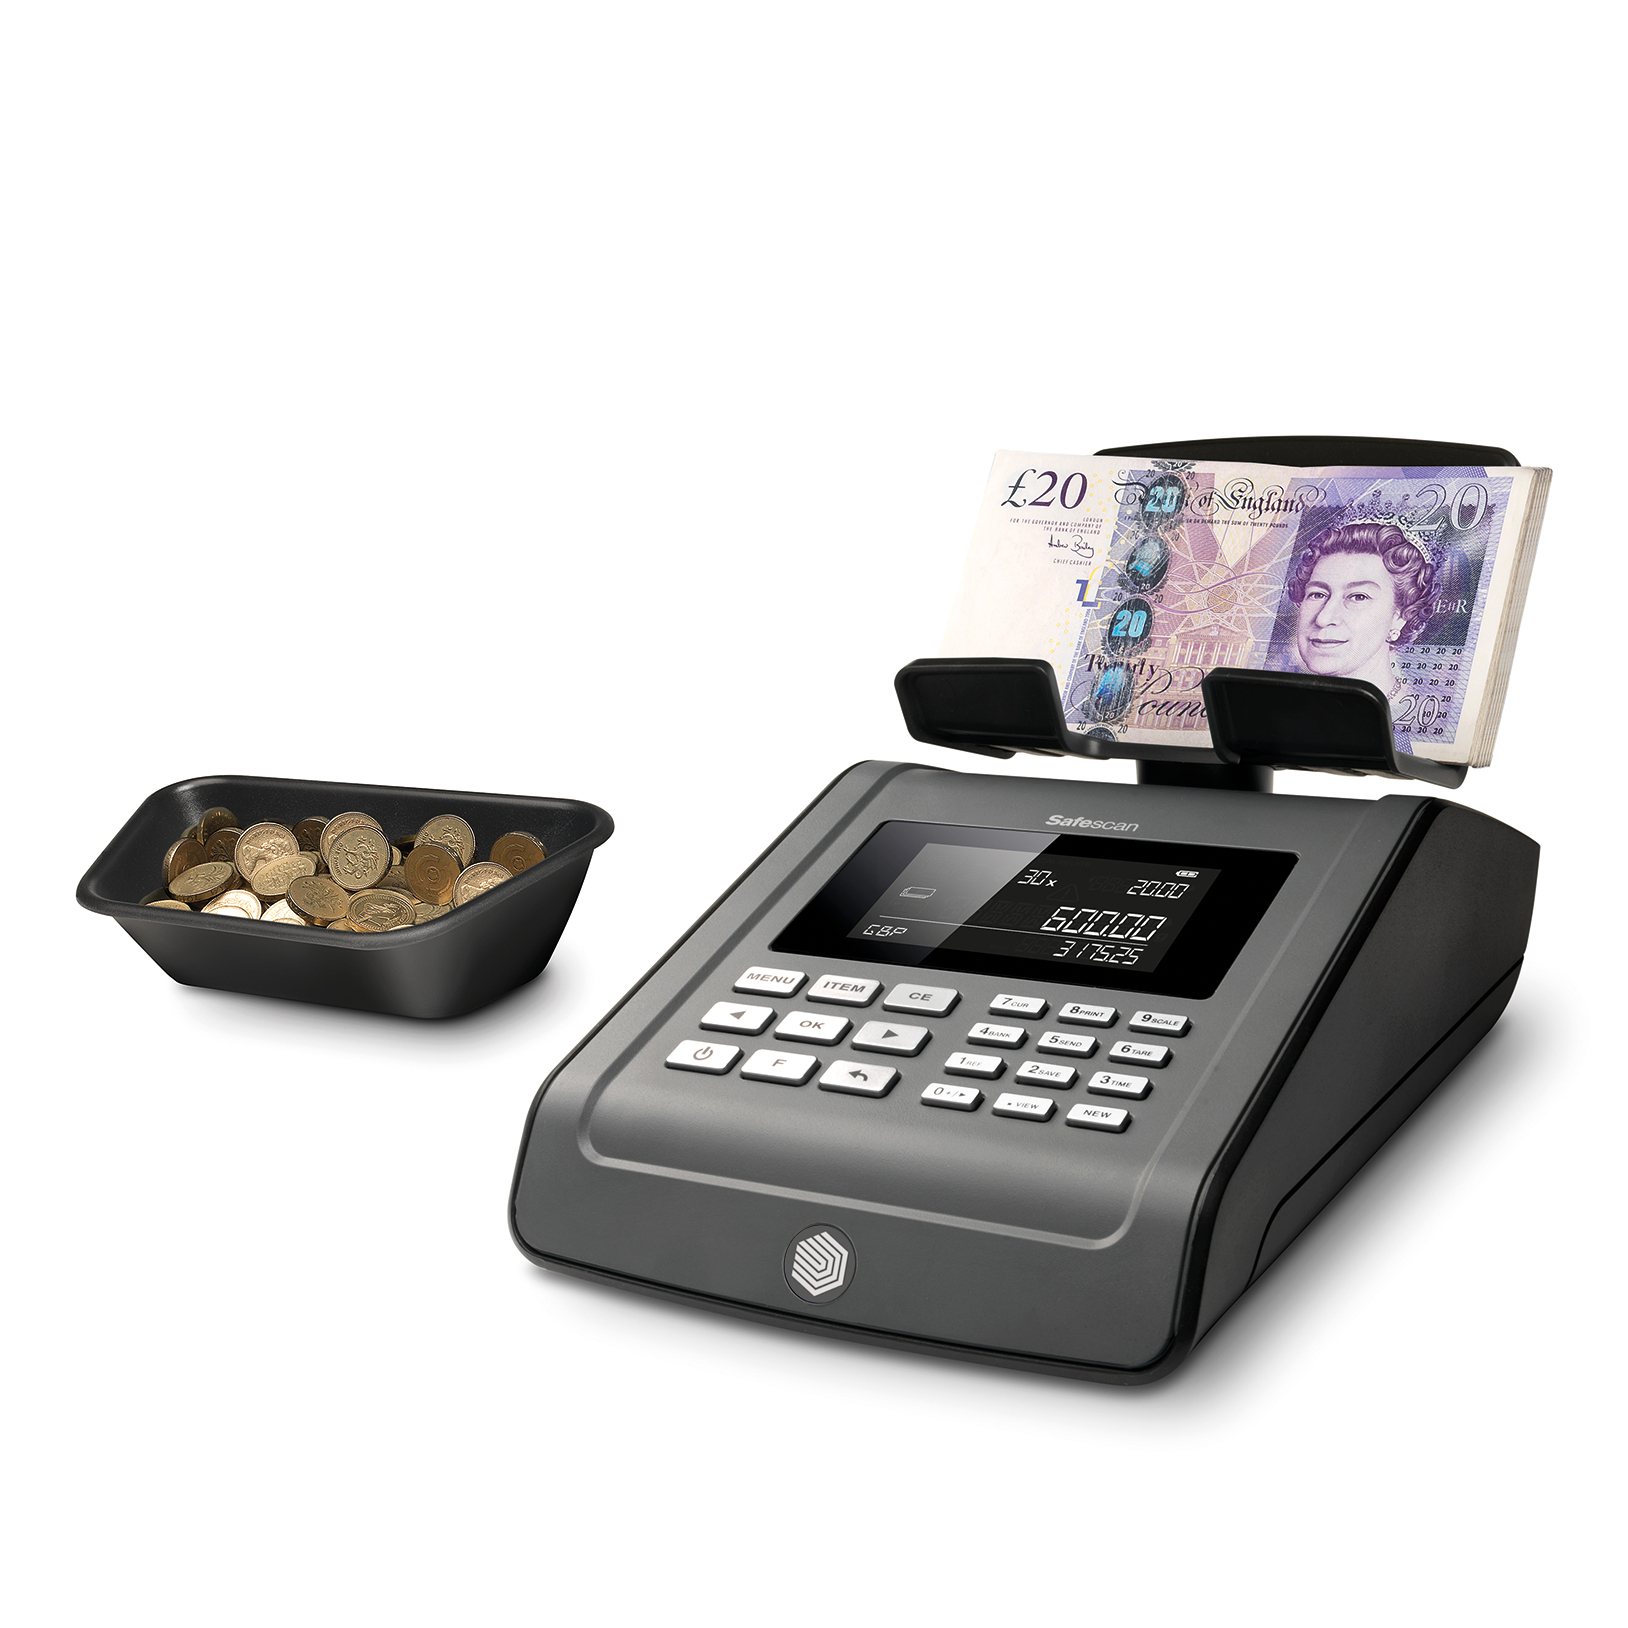 Cash Safescan 6185 Money Counting Scale 1.2kg 151x245x154mm Black Ref 131-0534